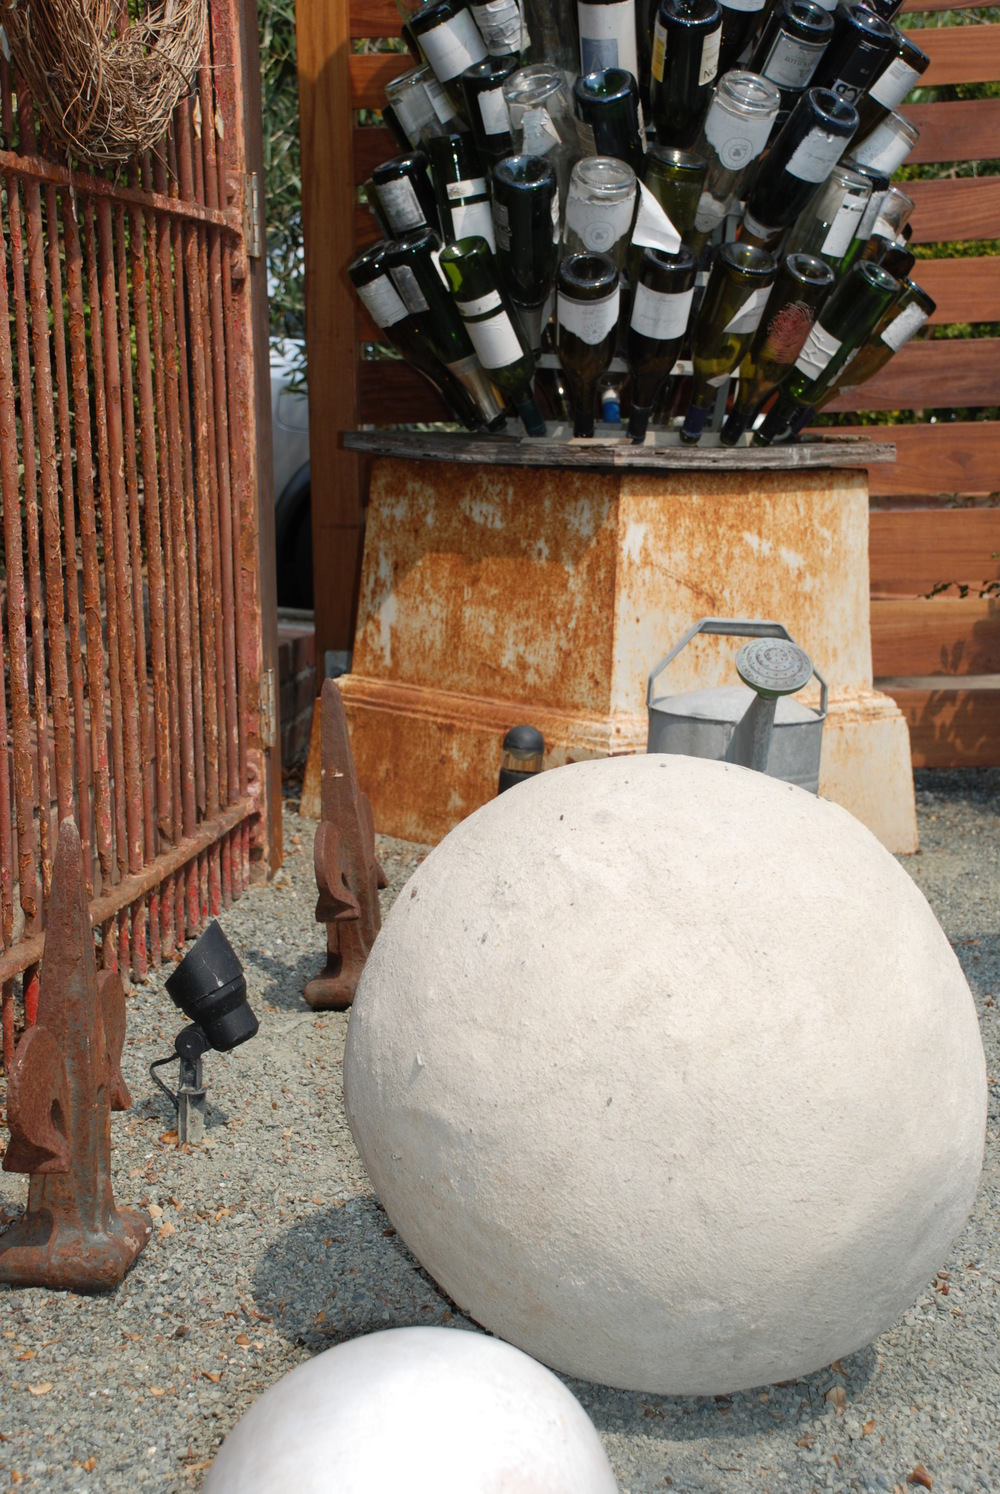 French wine bottle dryer becomes garden art alongside concrete spheres